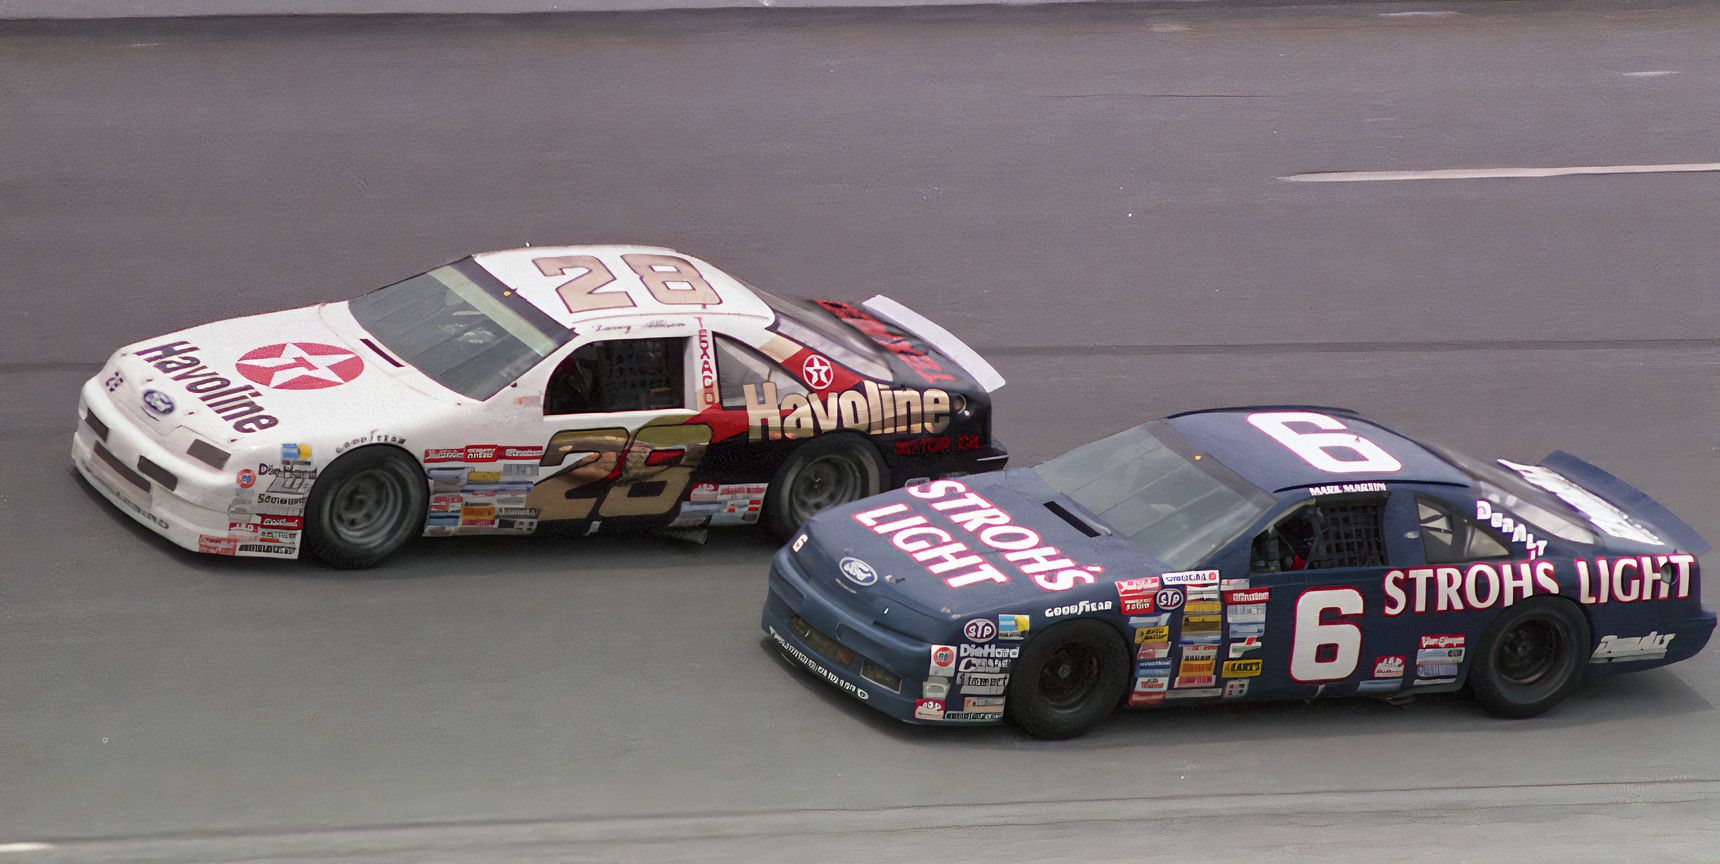 Top 10 NASCAR Drivers Without a Championship